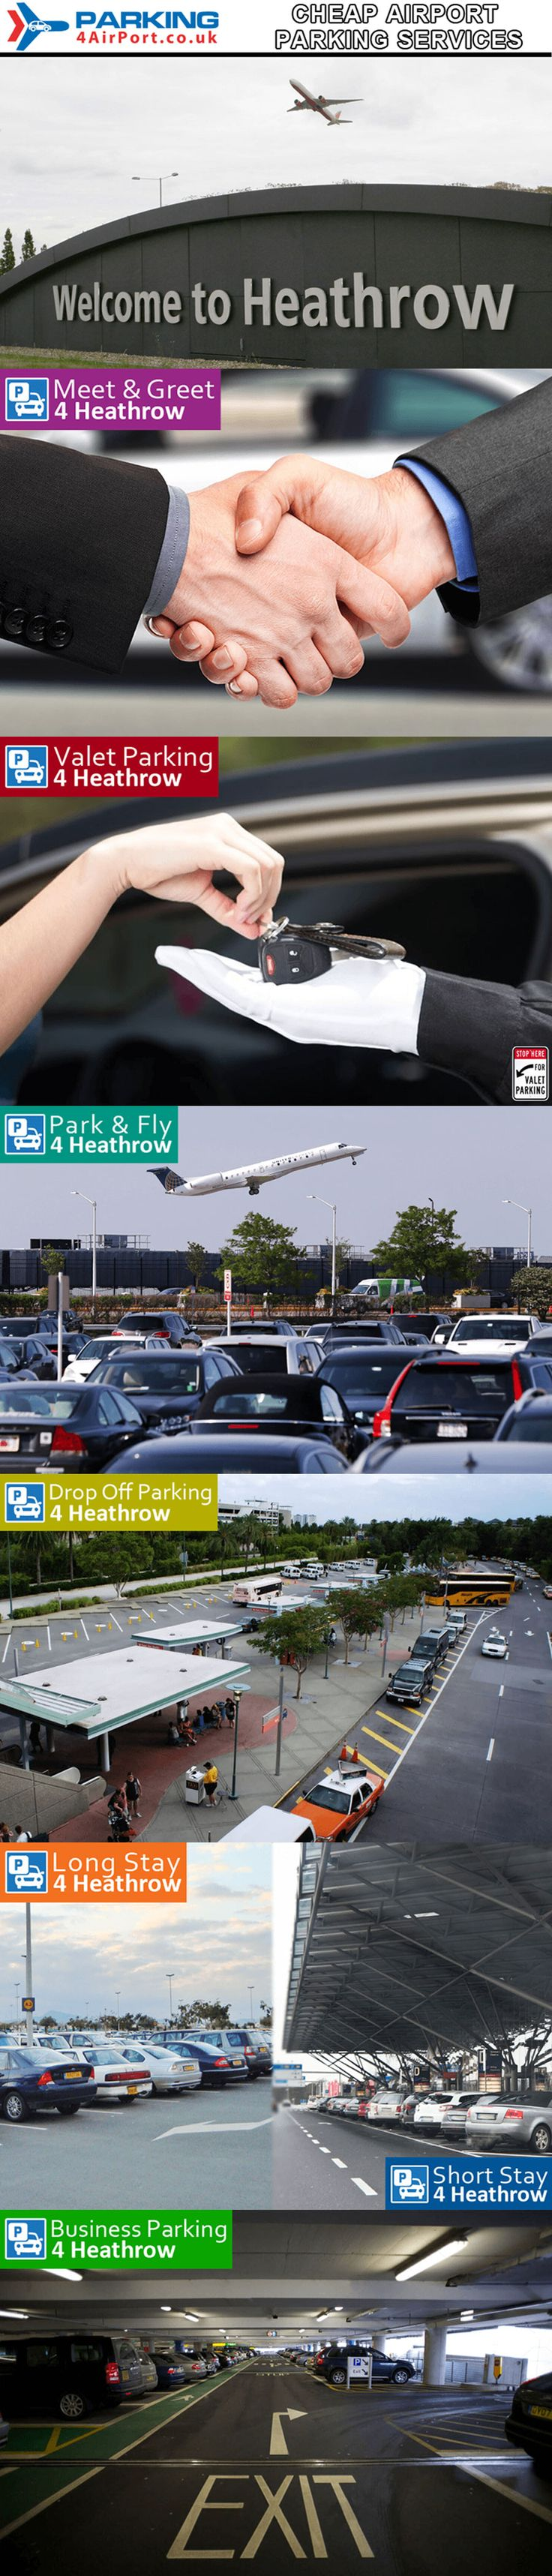 52 Best Valet Parking 4 Heathrow Images On Pinterest Park Parks And 1